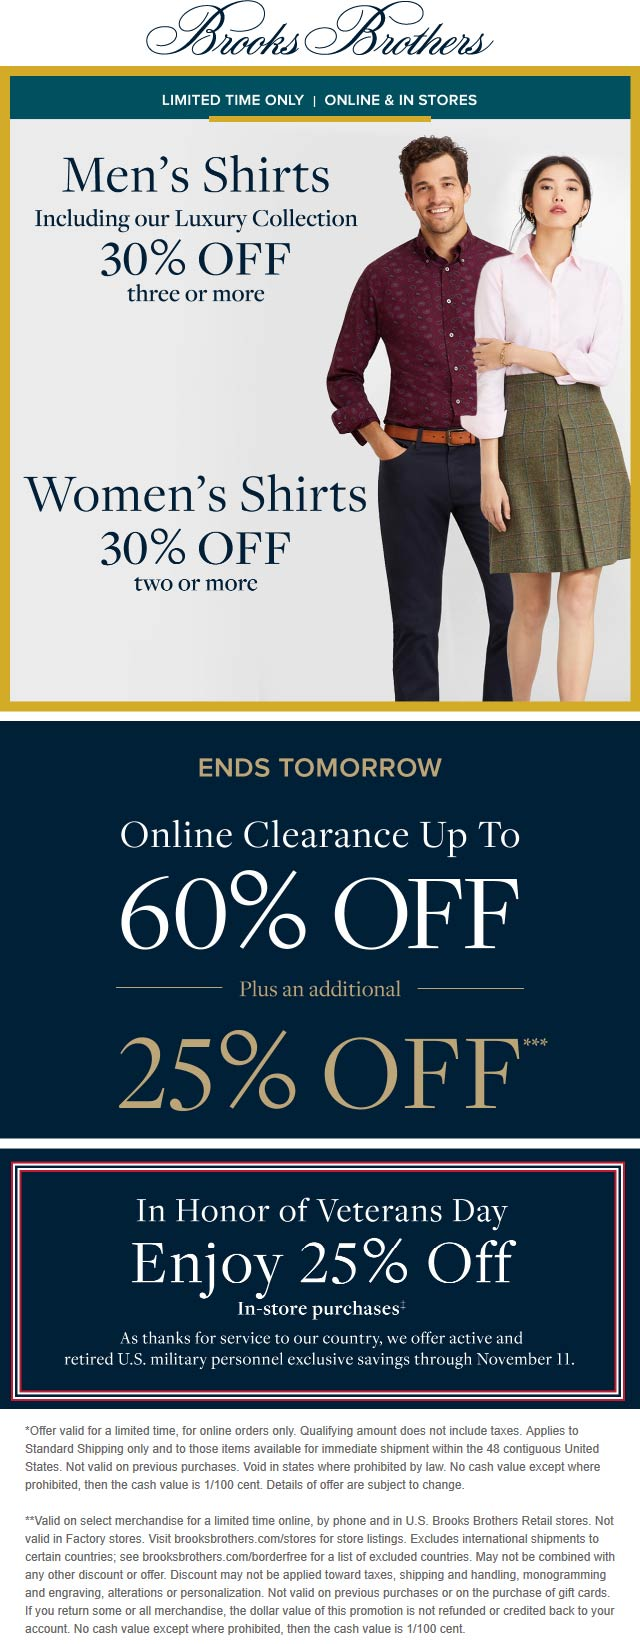 Brooks Brothers coupons & promo code for [April 2020]